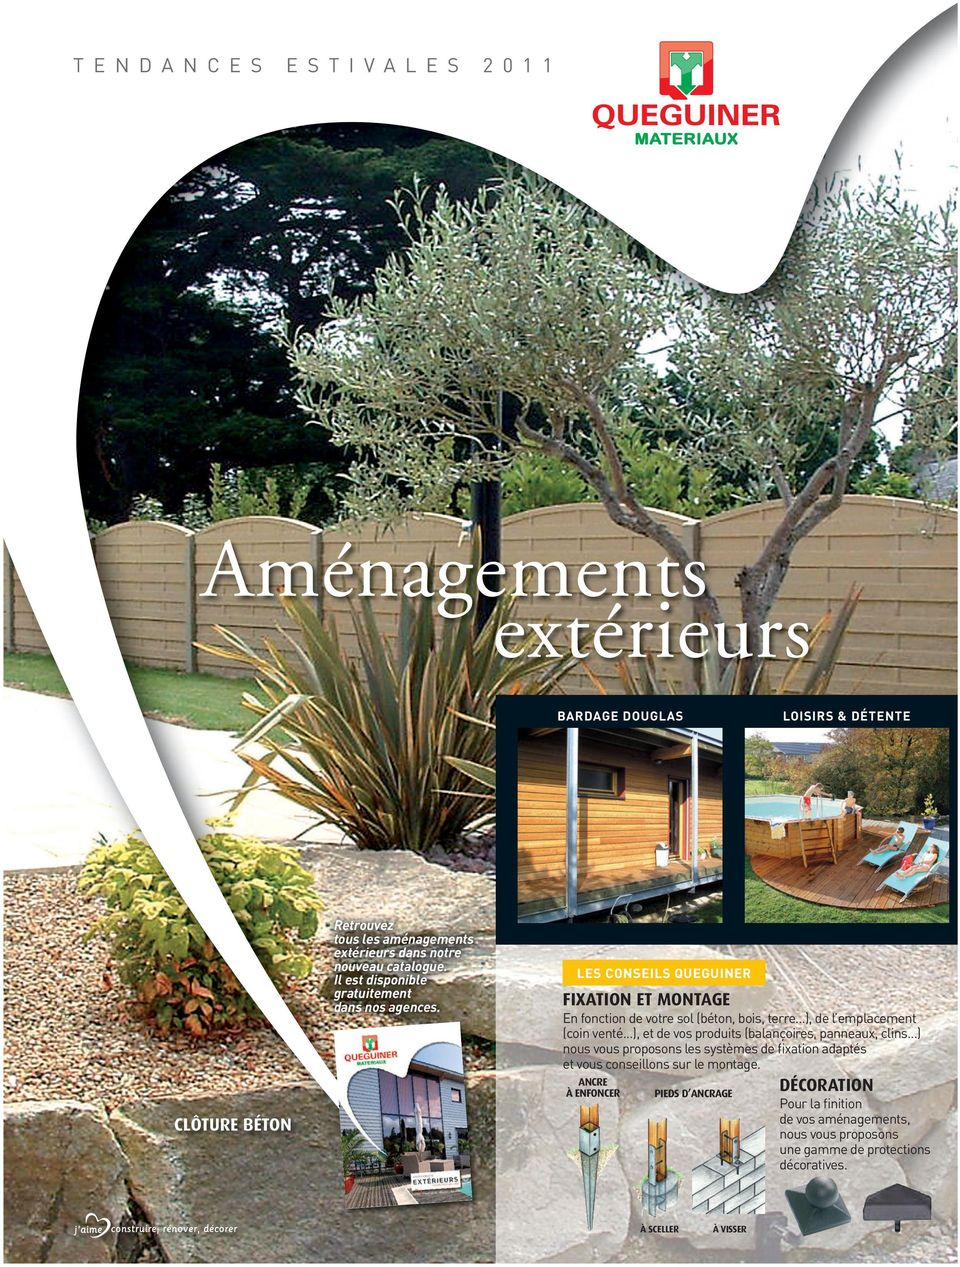 amenagement exterieur queguiner